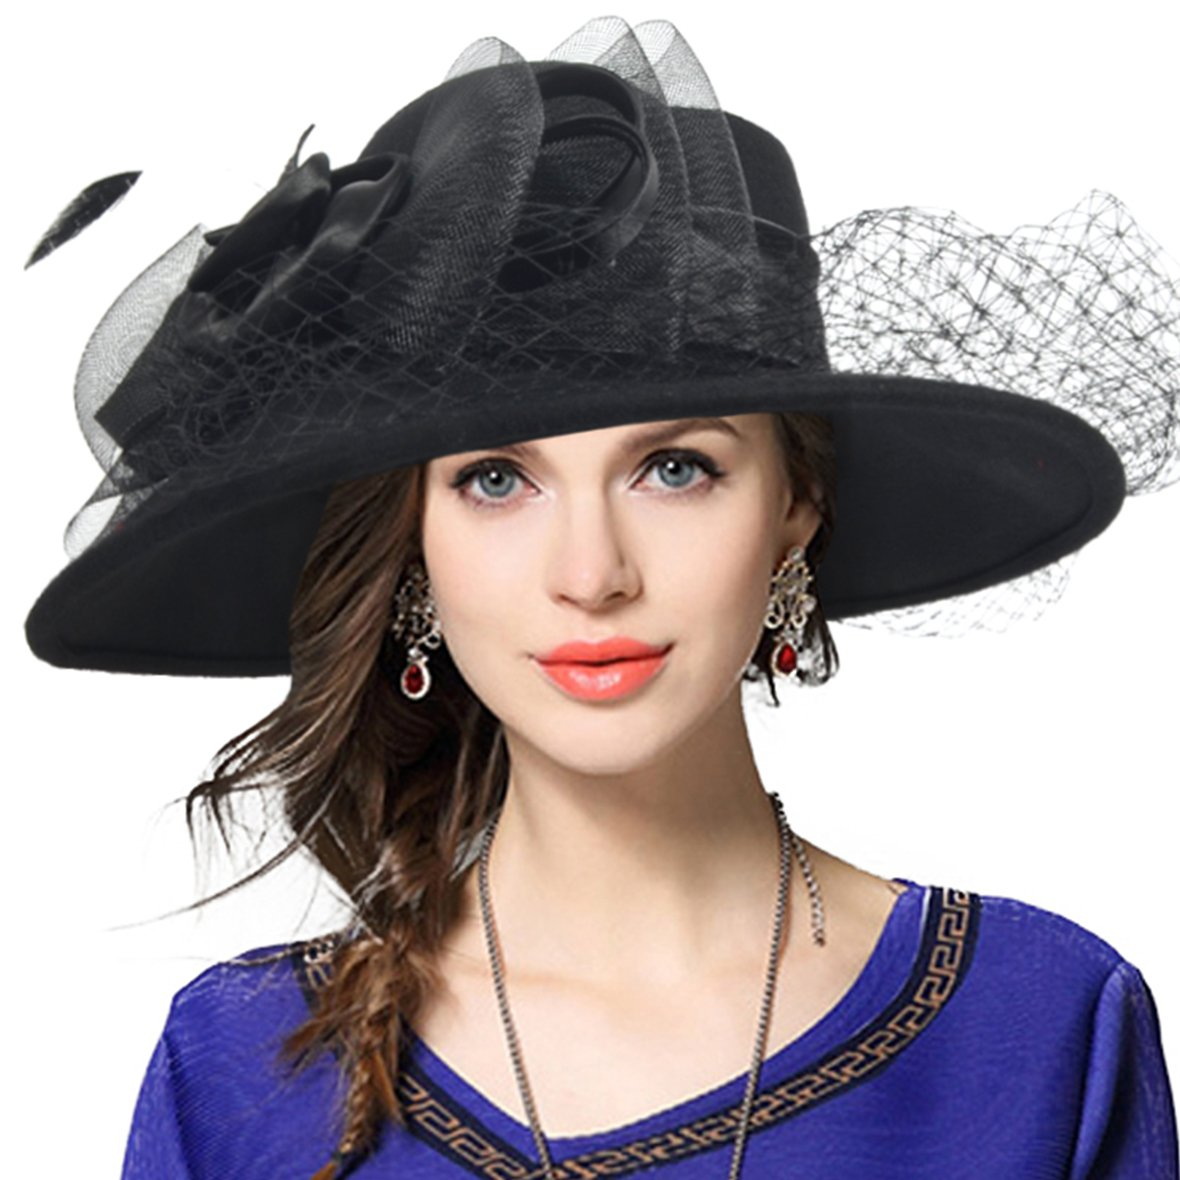 1950s Women's Hat Styles & History VECRY Womens Fascinator Wool Felt Hat Cocktail Party Wedding Fedora Hats $32.87 AT vintagedancer.com